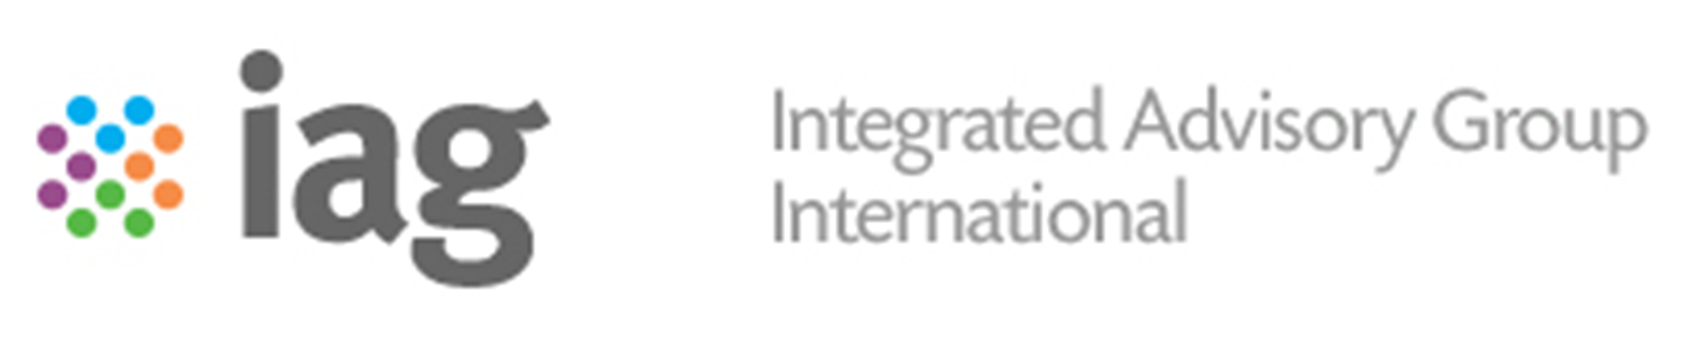 iag international logo